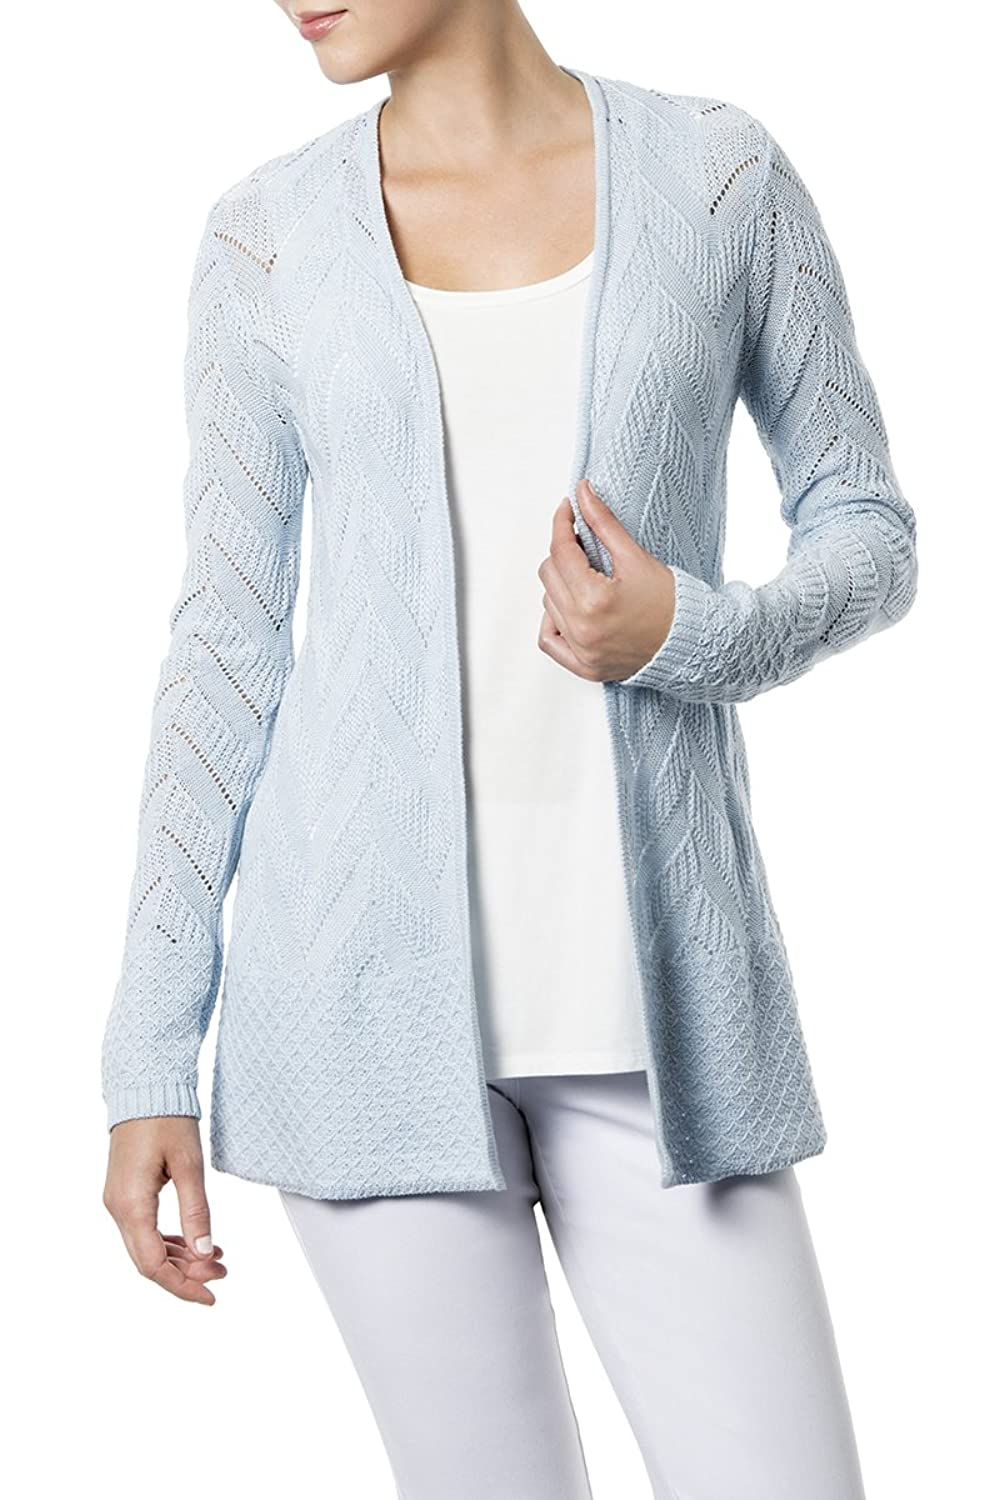 89th & Madison Long Sleeve Open Cardigan With Mitered Rib&Mini Dot Trim